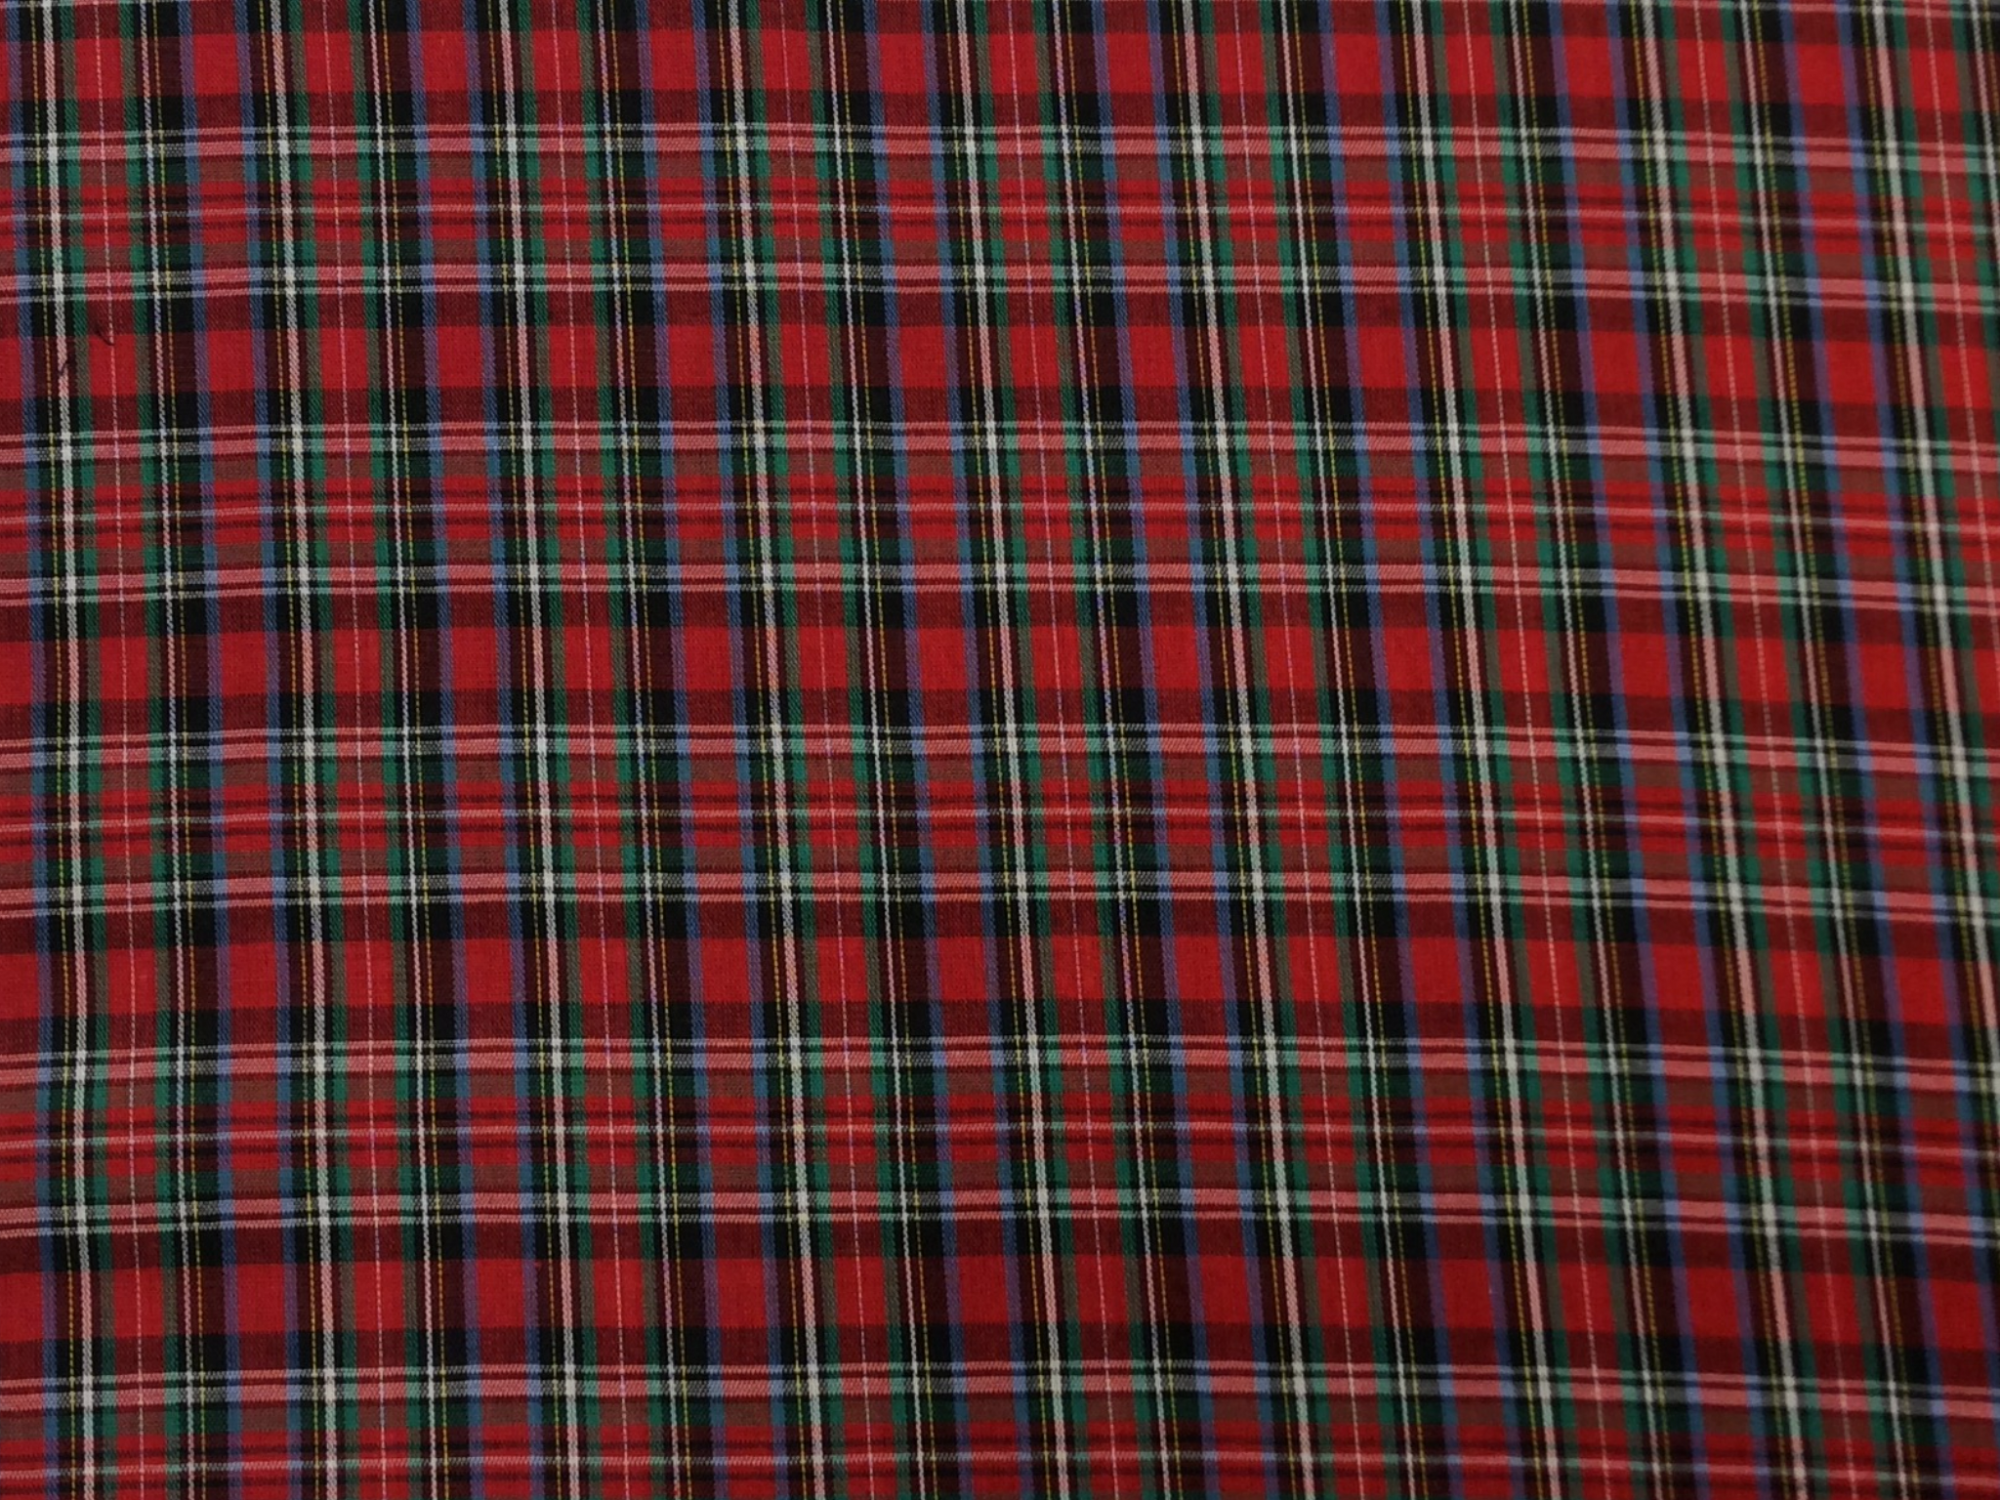 Tartan Plaid Dunbar Clan Apparel Fabric Yarn Dyed Fabric FTP16